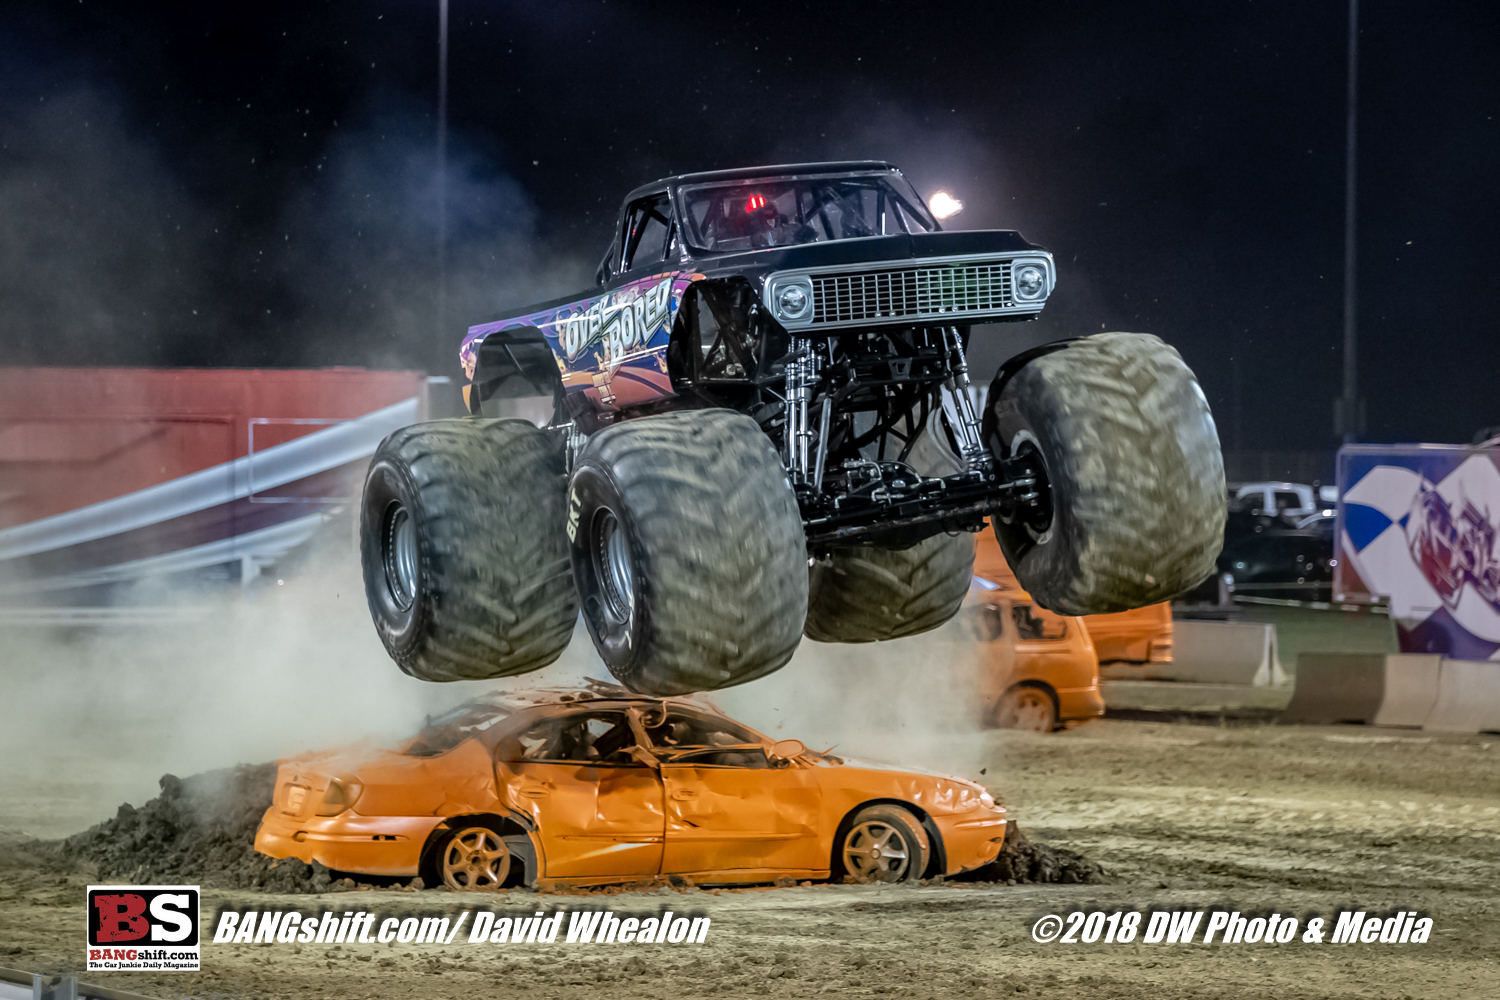 2018 Monster Truck Throwdown At GALOT Motorsports Park – Flying Trucks, Mashed Up Cars!